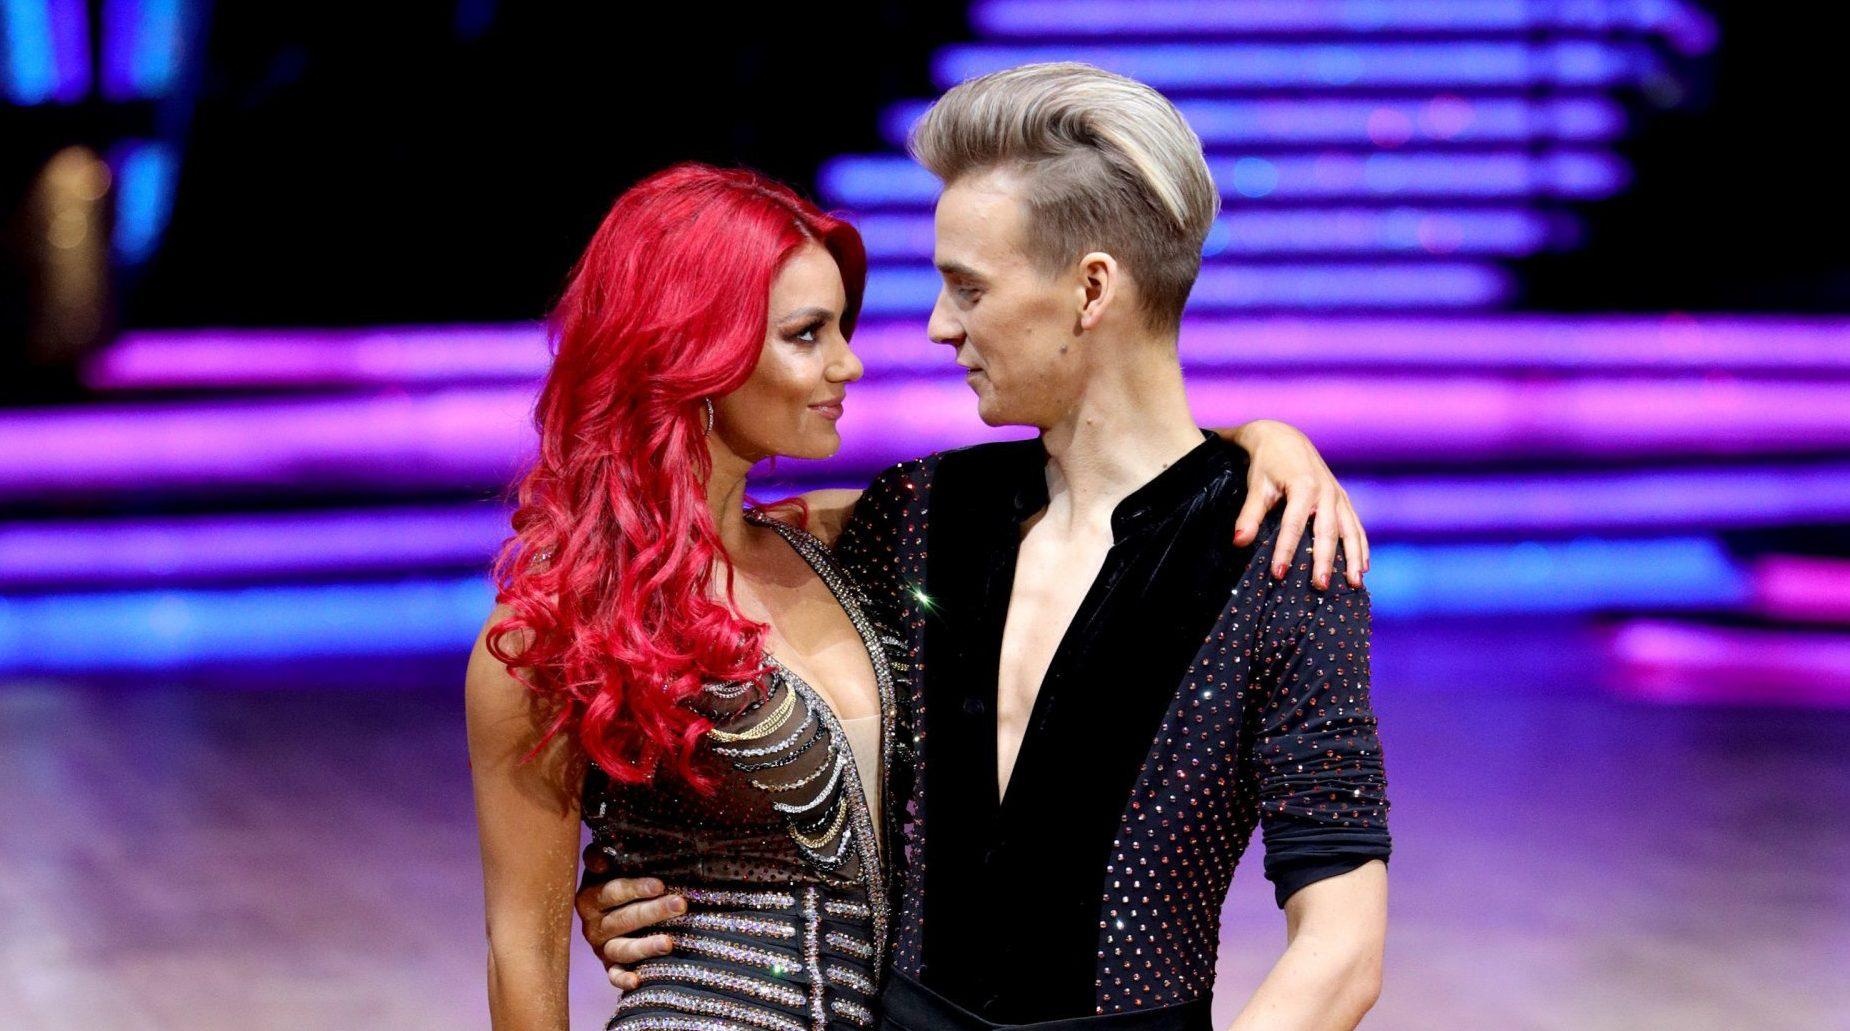 Strictly Come Dancing's Joe Sugg and Dianne Buswell laugh off second tour tumble as they joke about 'going on a lot of trips'